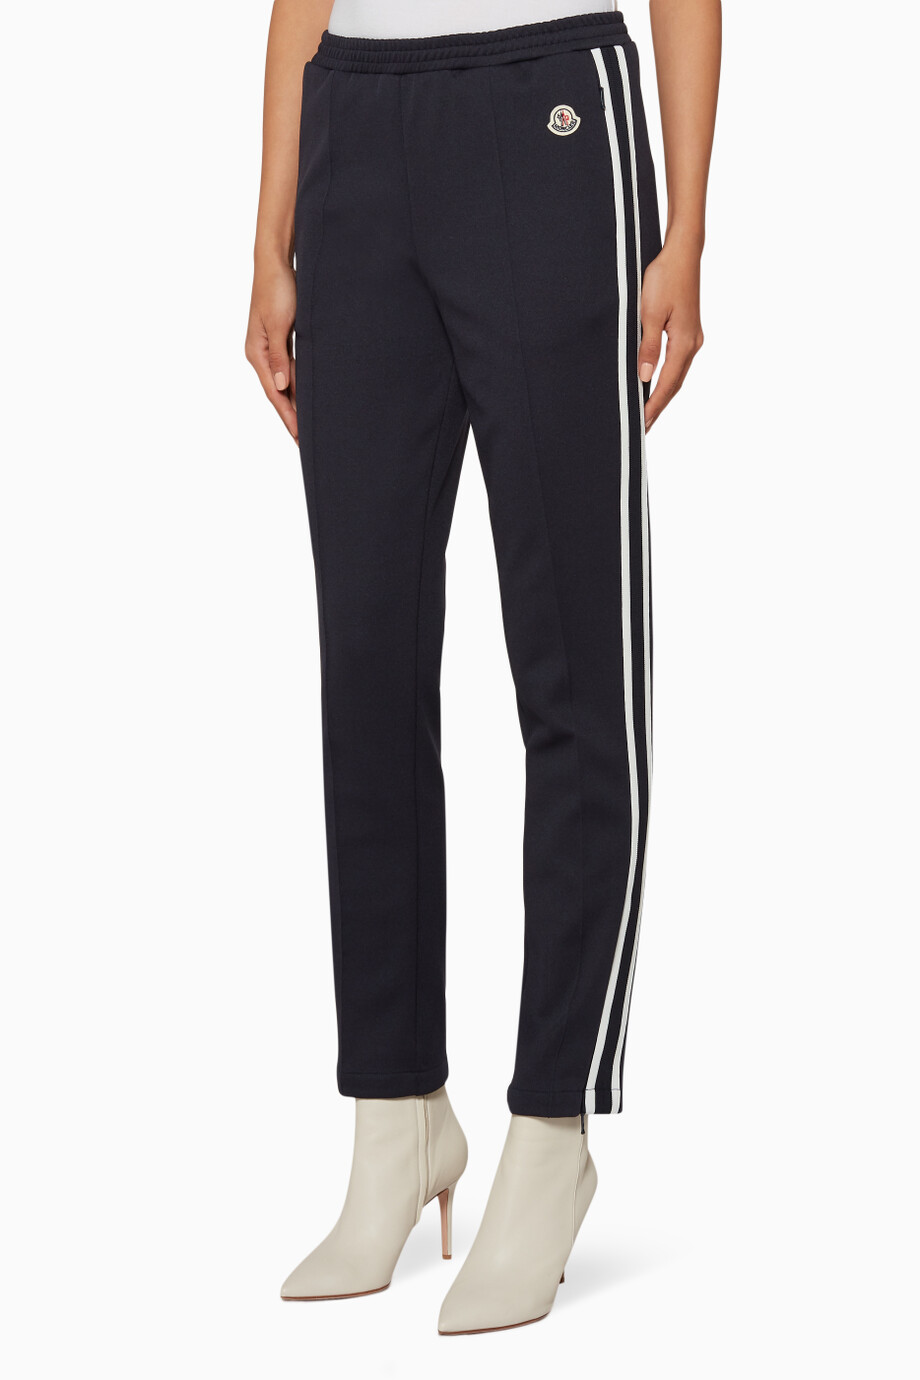 78723b27c73a36 Shop Moncler Blue Navy Side-Striped Track Pants for Women | Ounass UAE